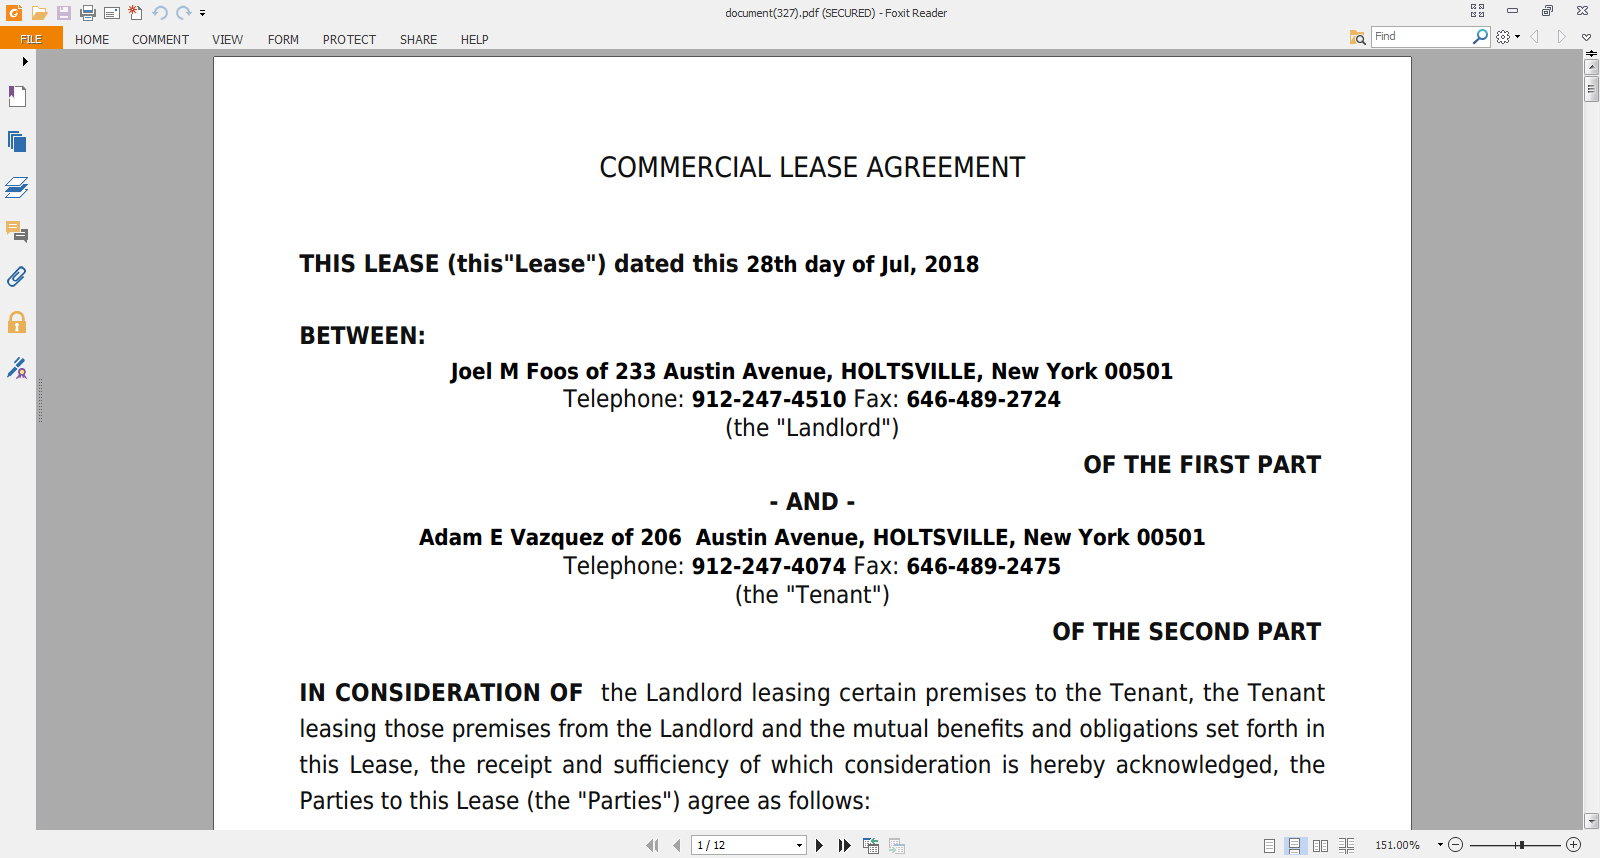 How To Make A Commercial Lease Agreement Online Legal Document